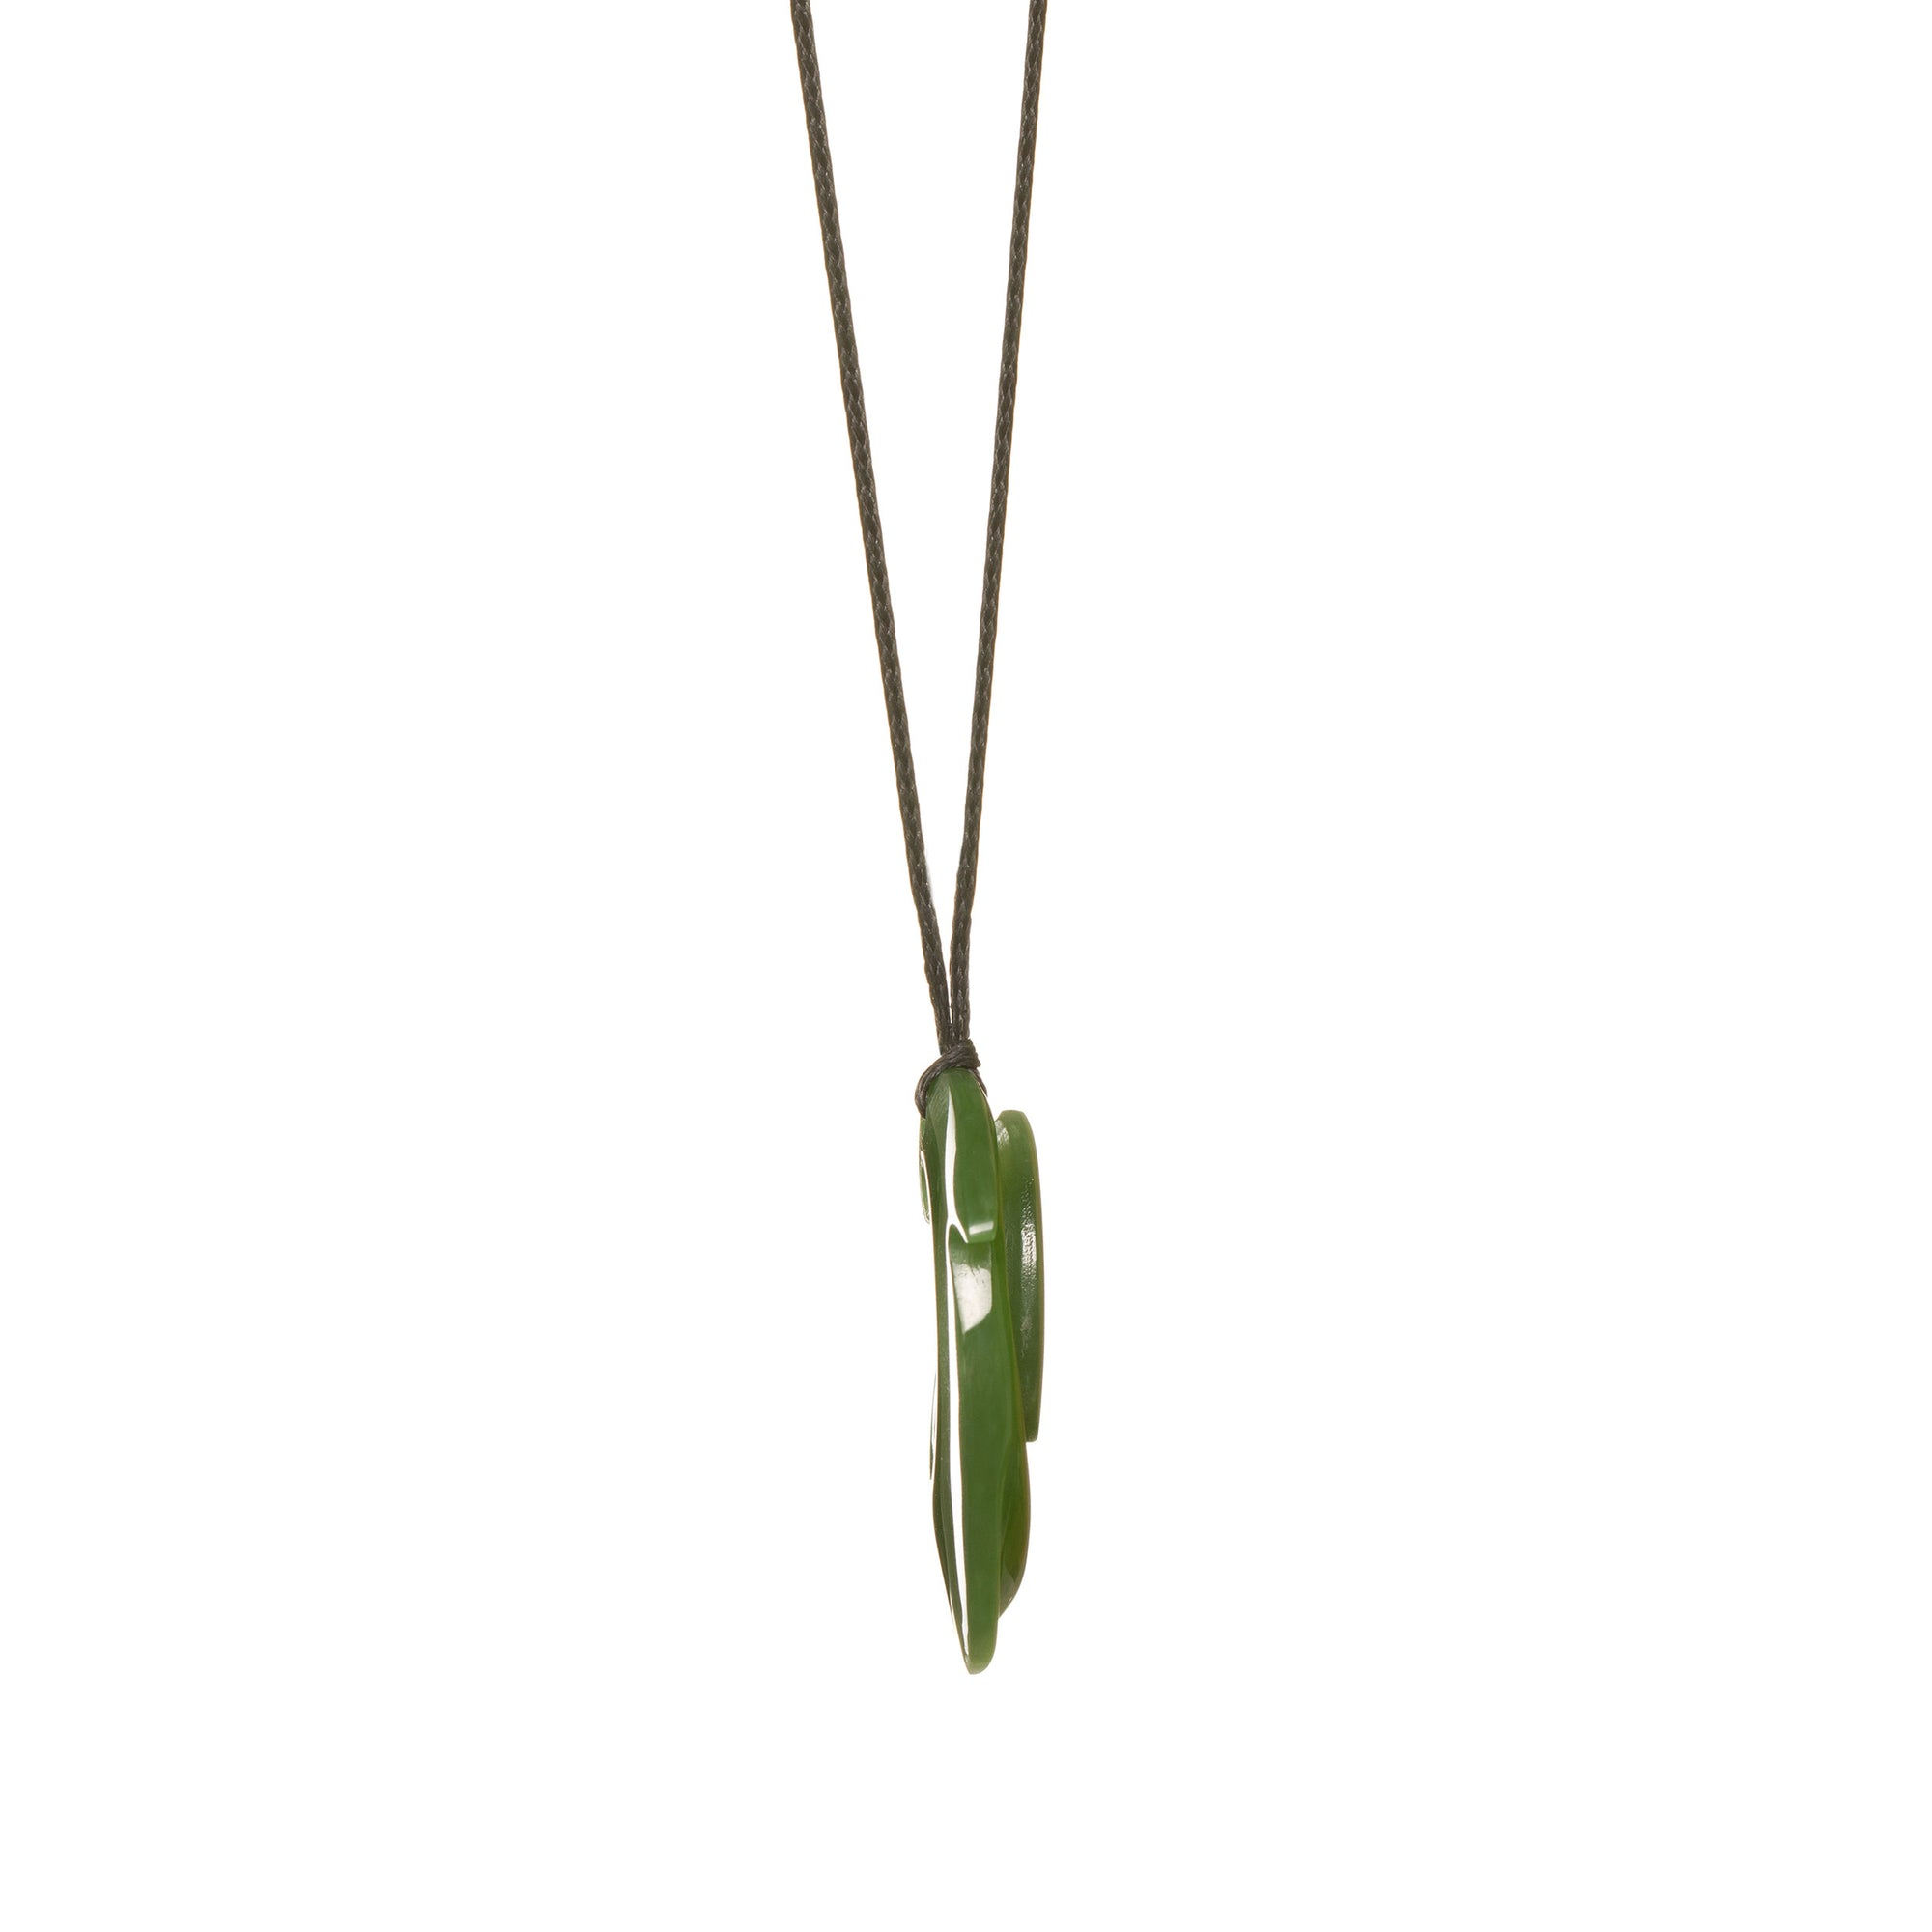 Canadian Jade Finned Fish Hook Necklace